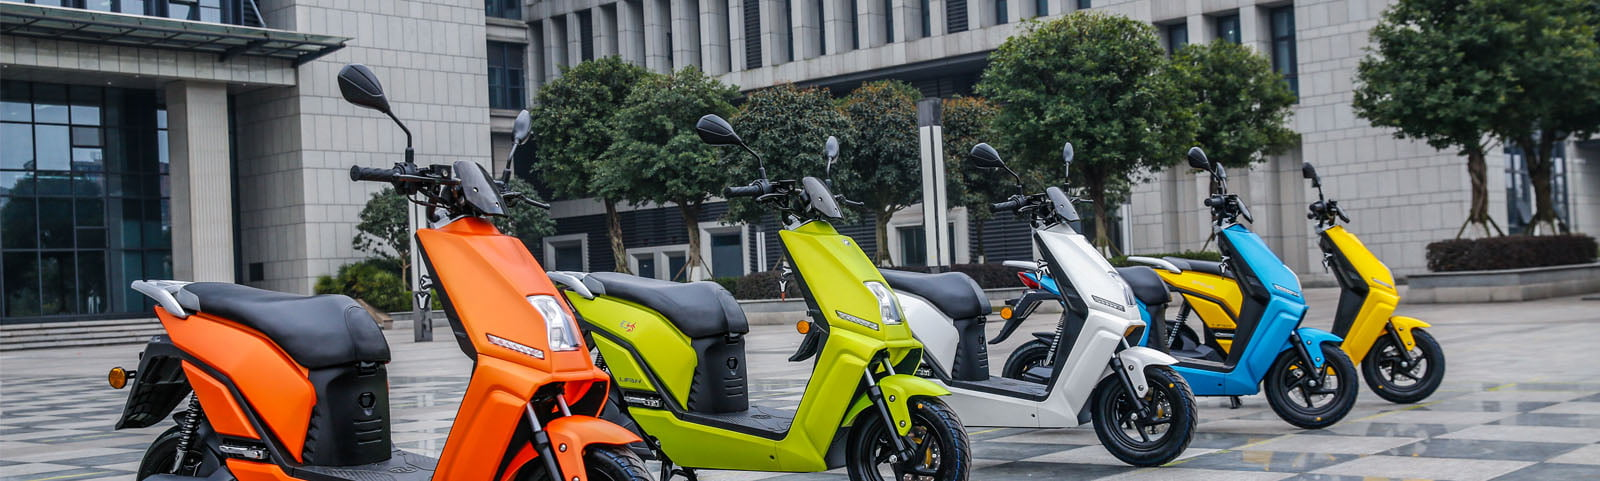 Lifan Scooters